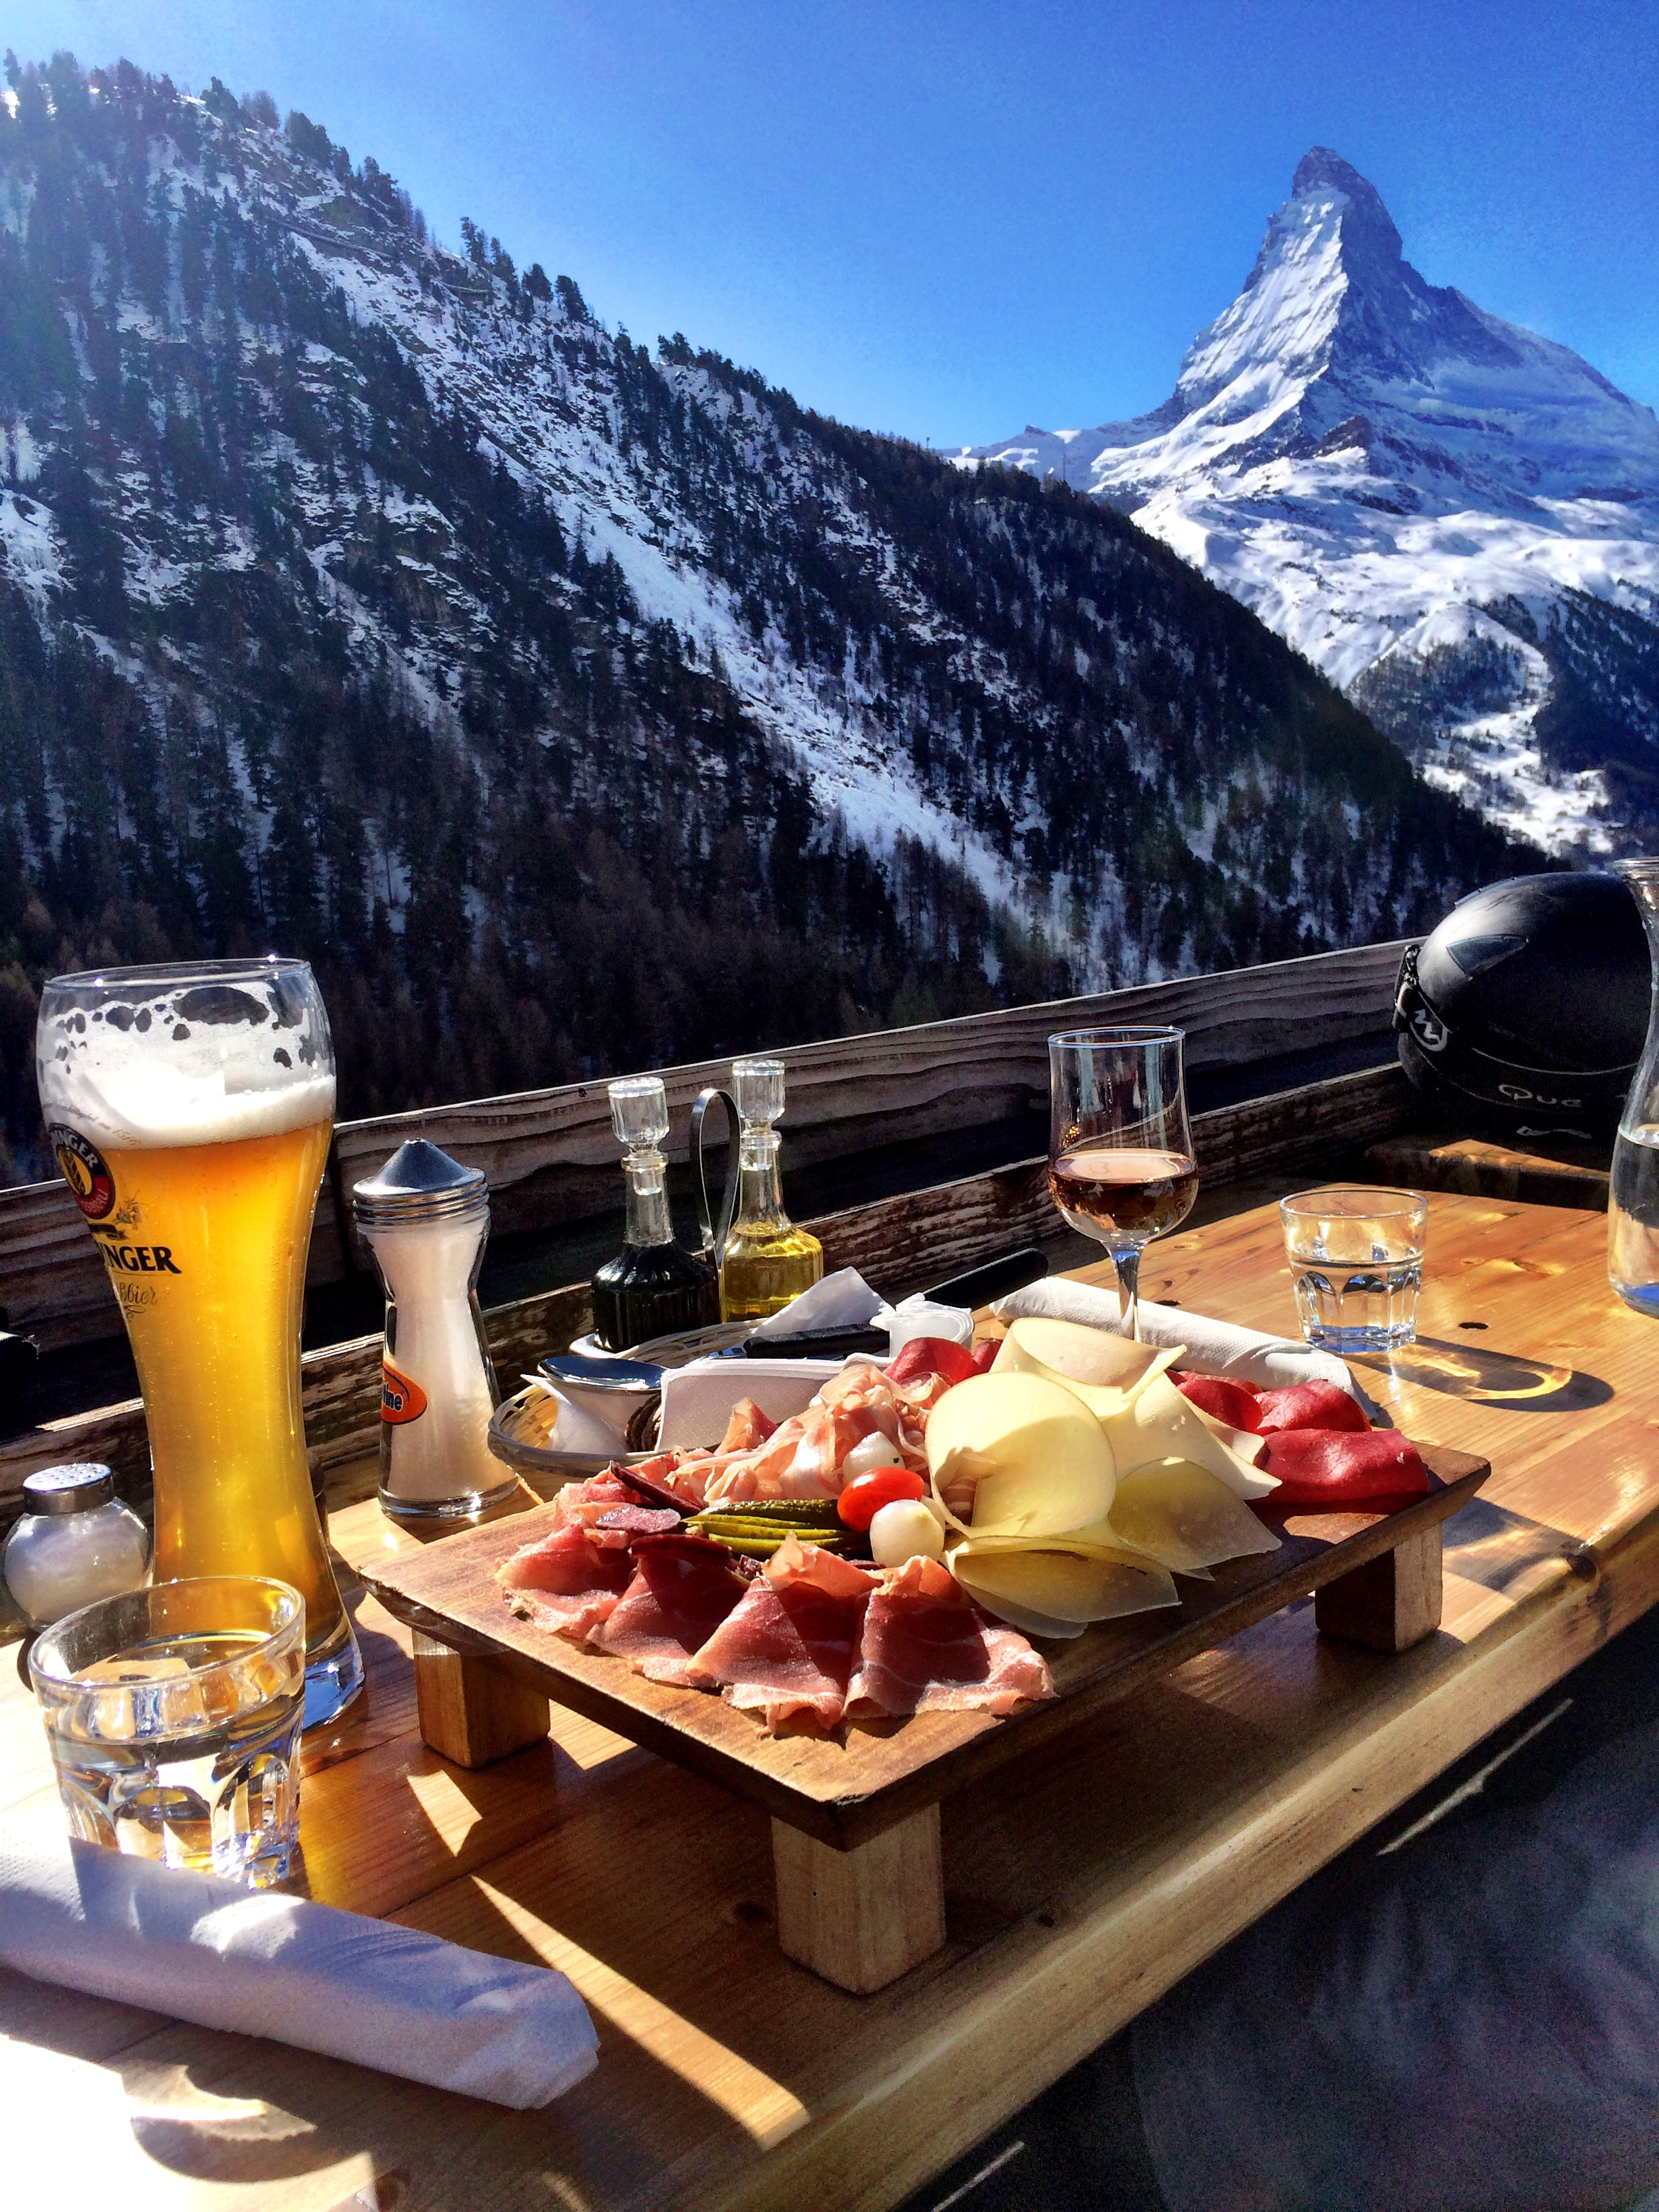 Alpine lunch overlooking Matterhorn